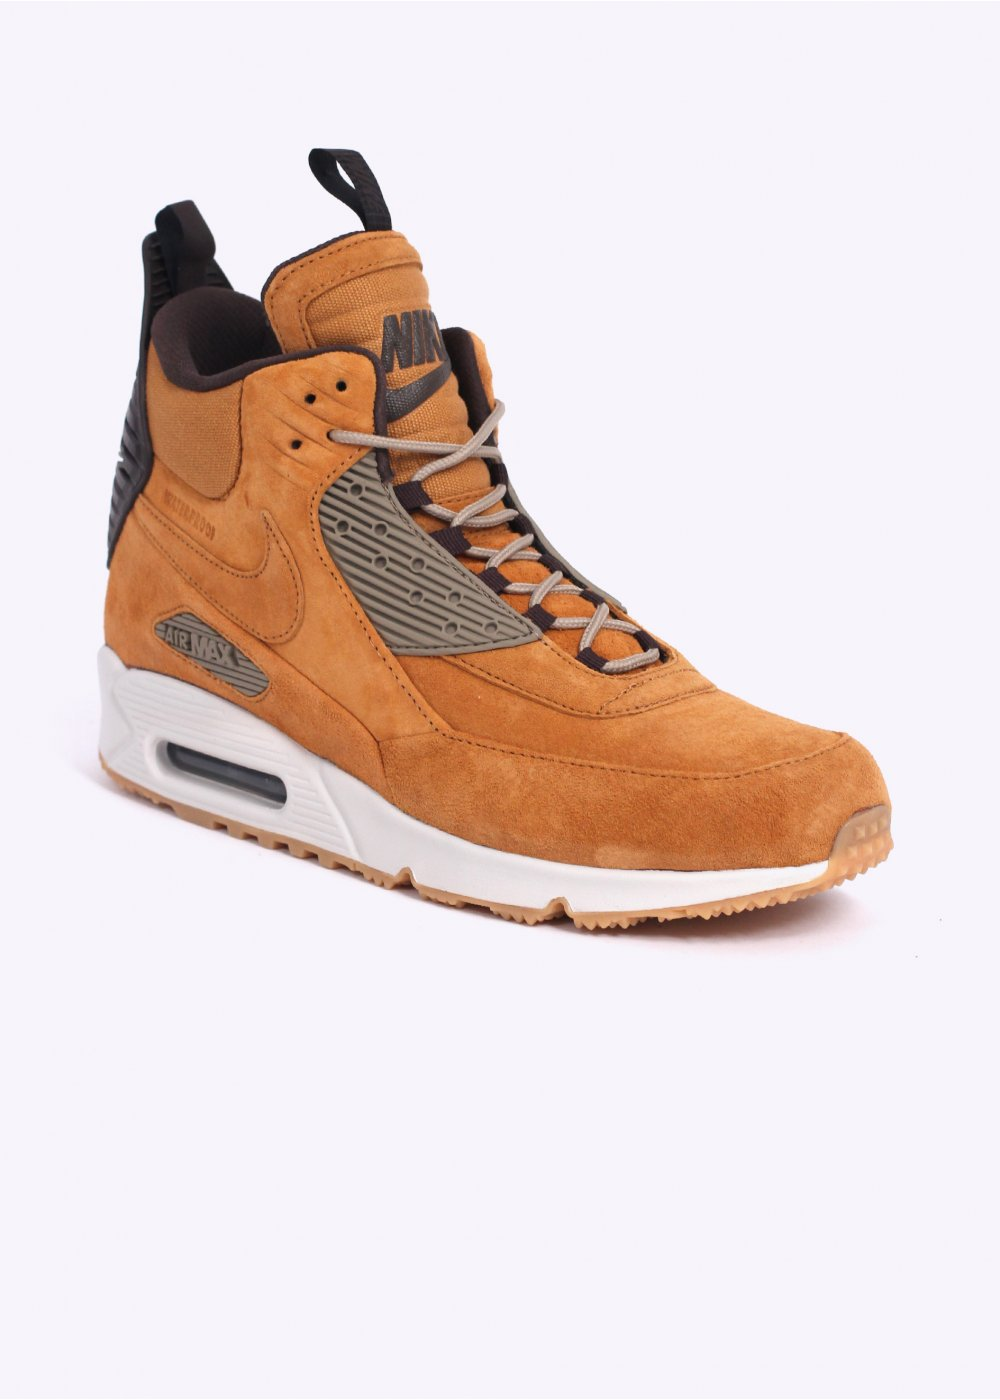 Nike Air Max 90 Winter Sneakerboots Bronze Bamboo